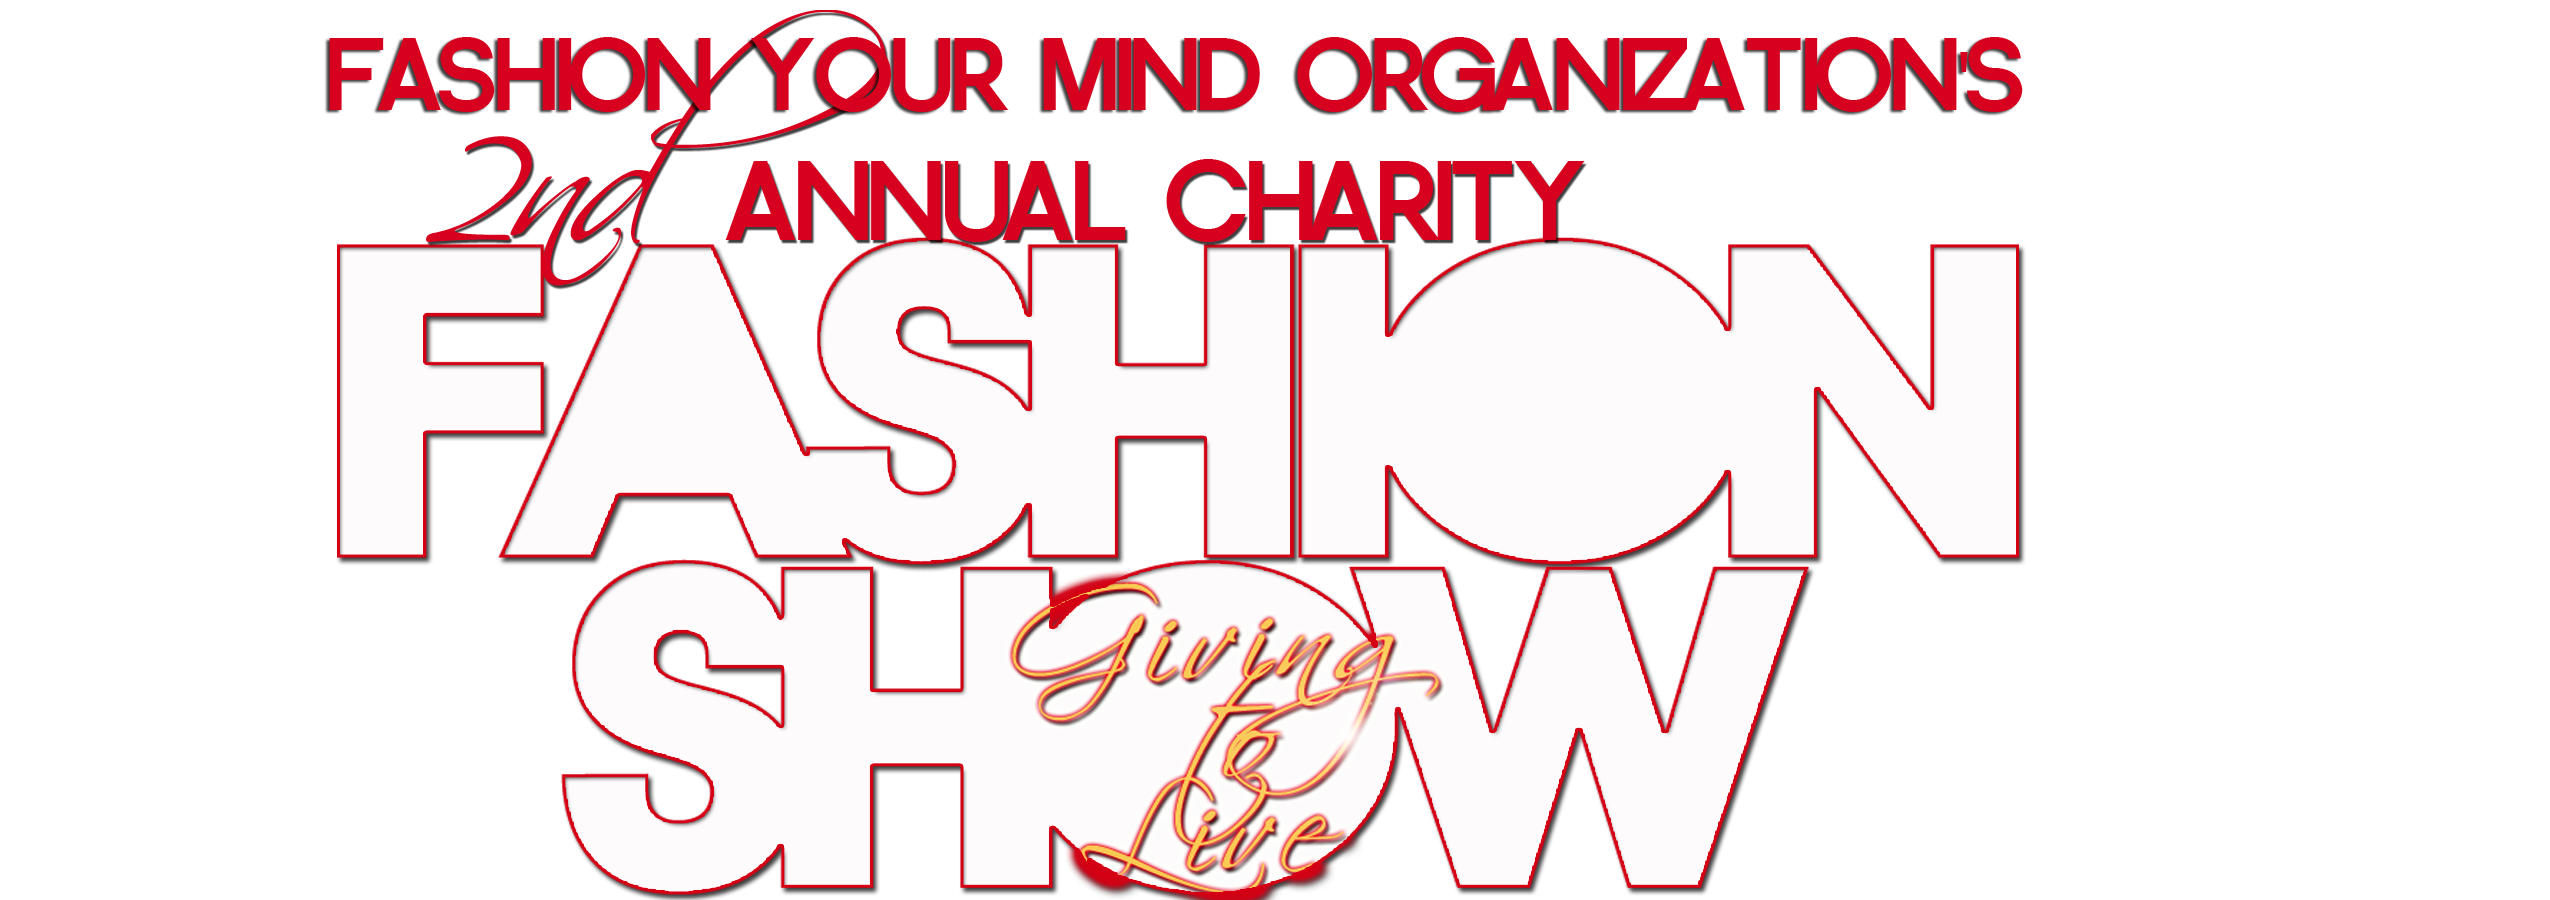 Fashion Your Mind Organization's 2nd Annual Charity Fashion Show